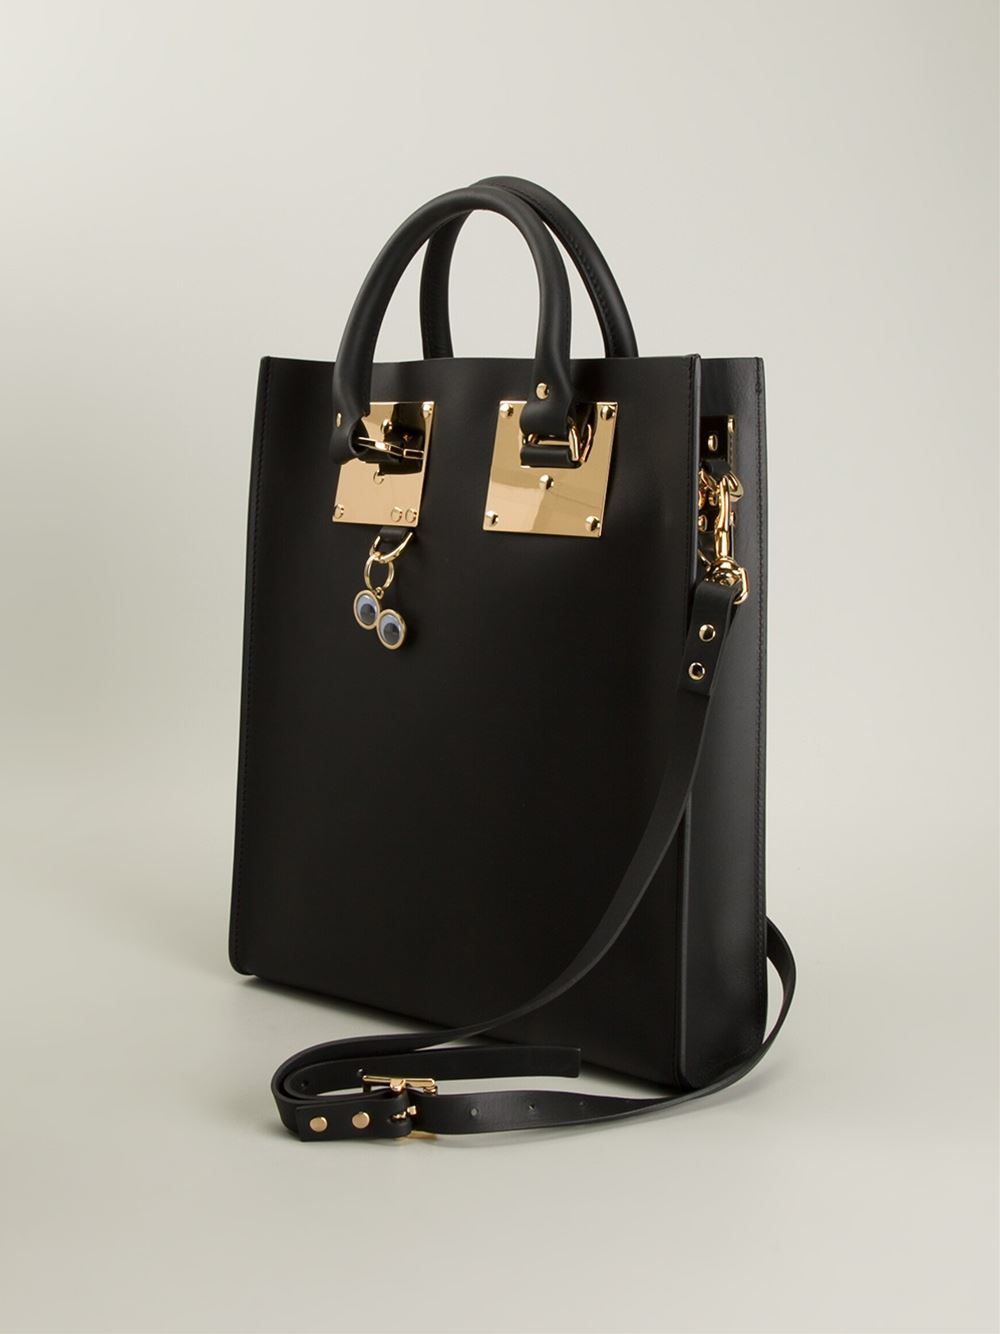 Sophie Hulme Rectangle Tote Bag in Black